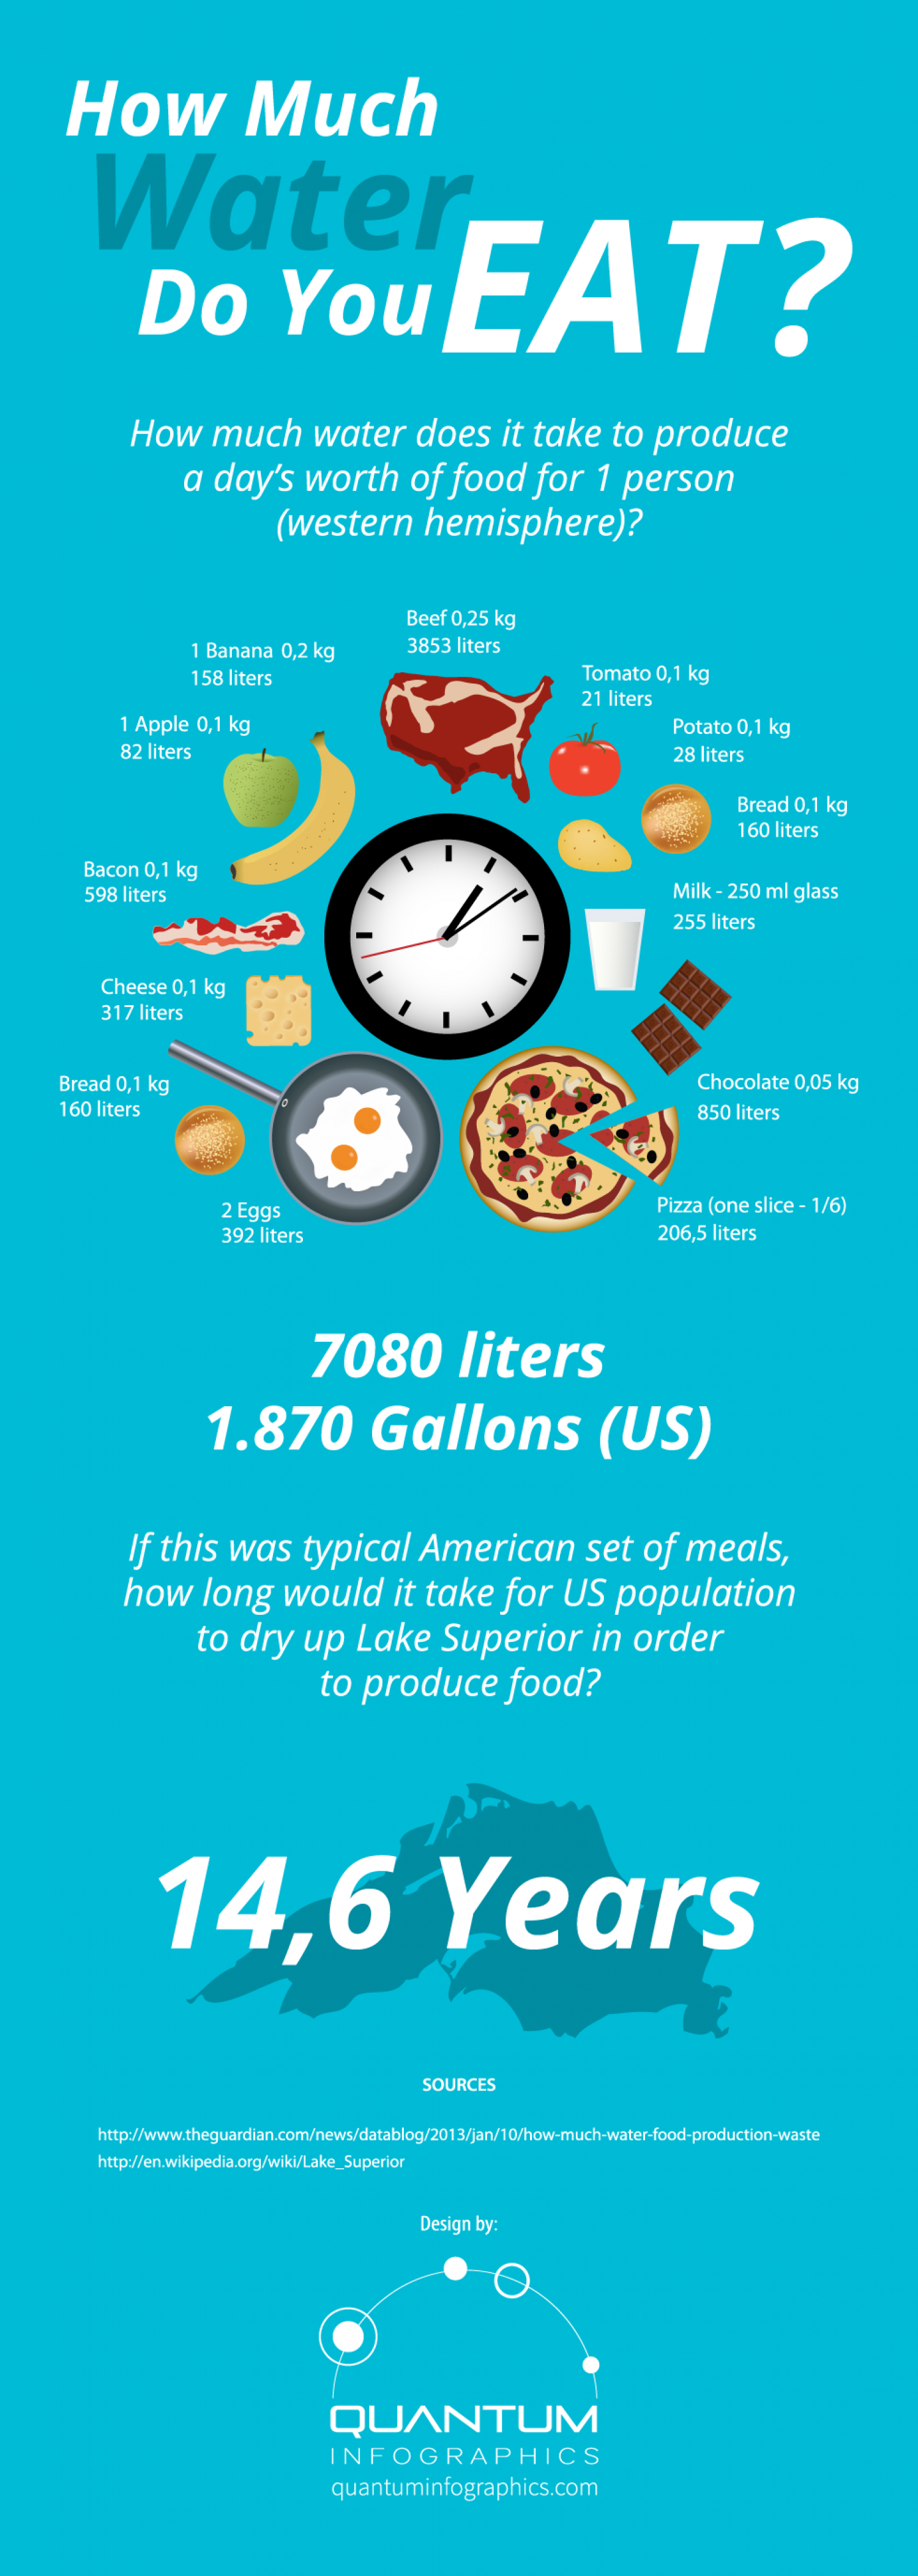 How Much Water Do You Eat? Infographic